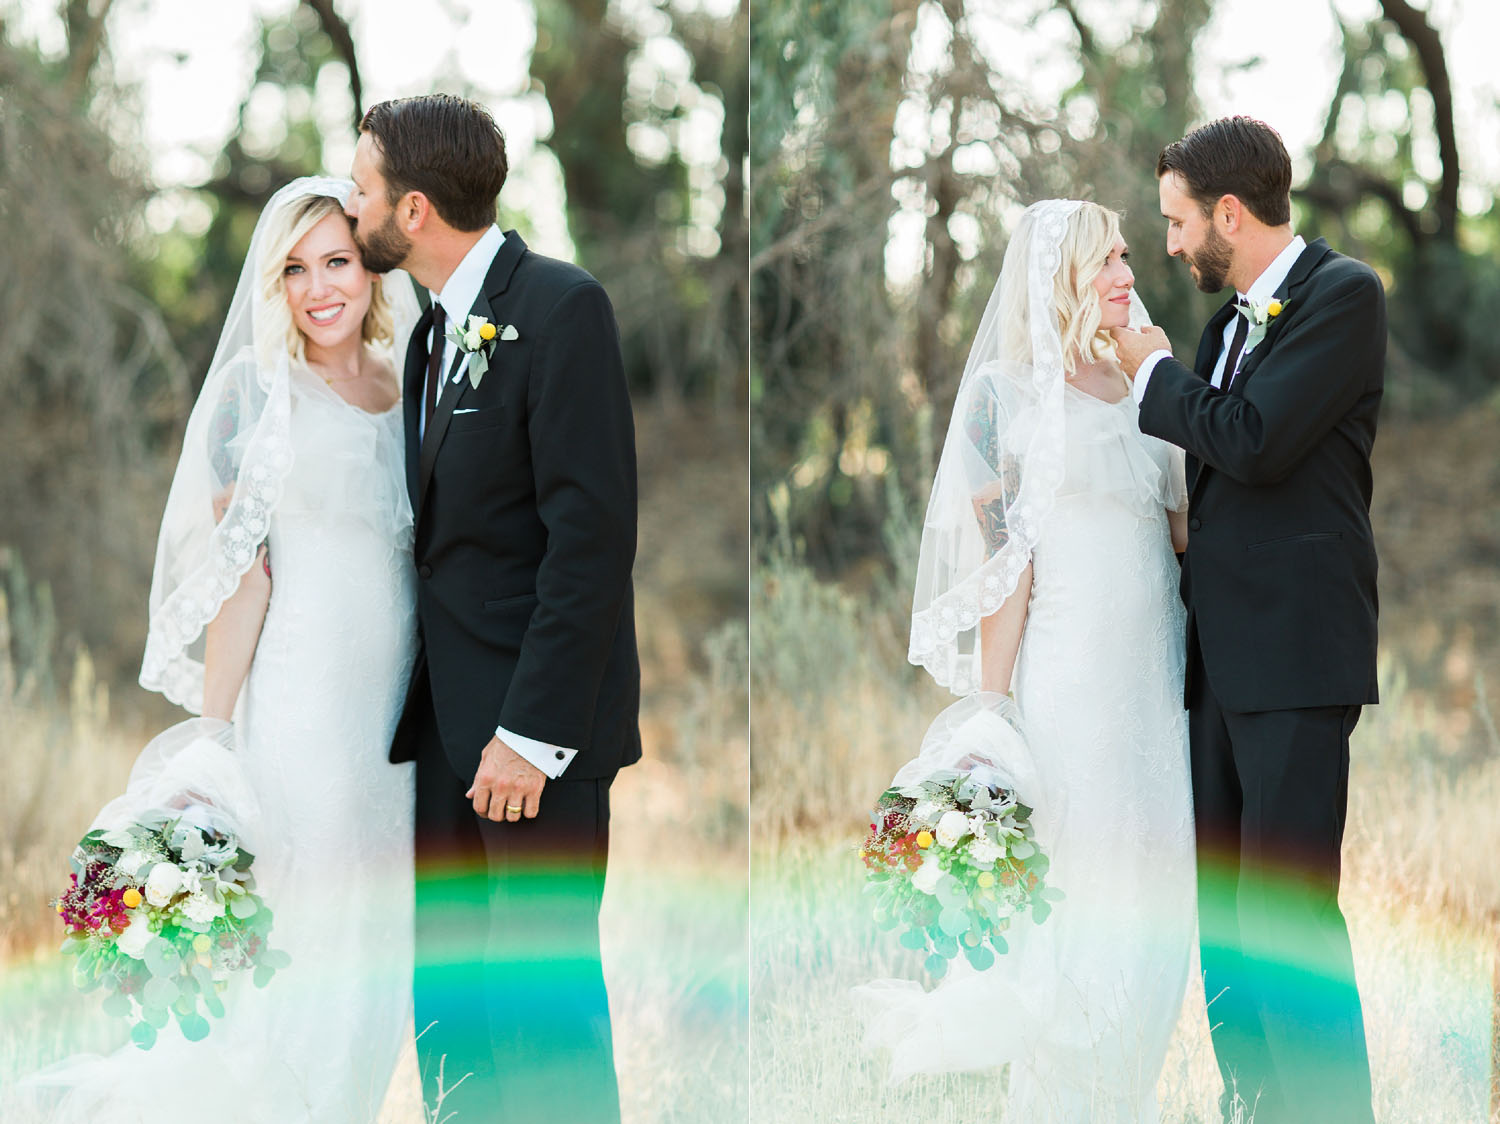 The Photege - Elegant Boho Wedding on Suburu Farm in Bakersfield California- Cassie and Darin Buoni-3007